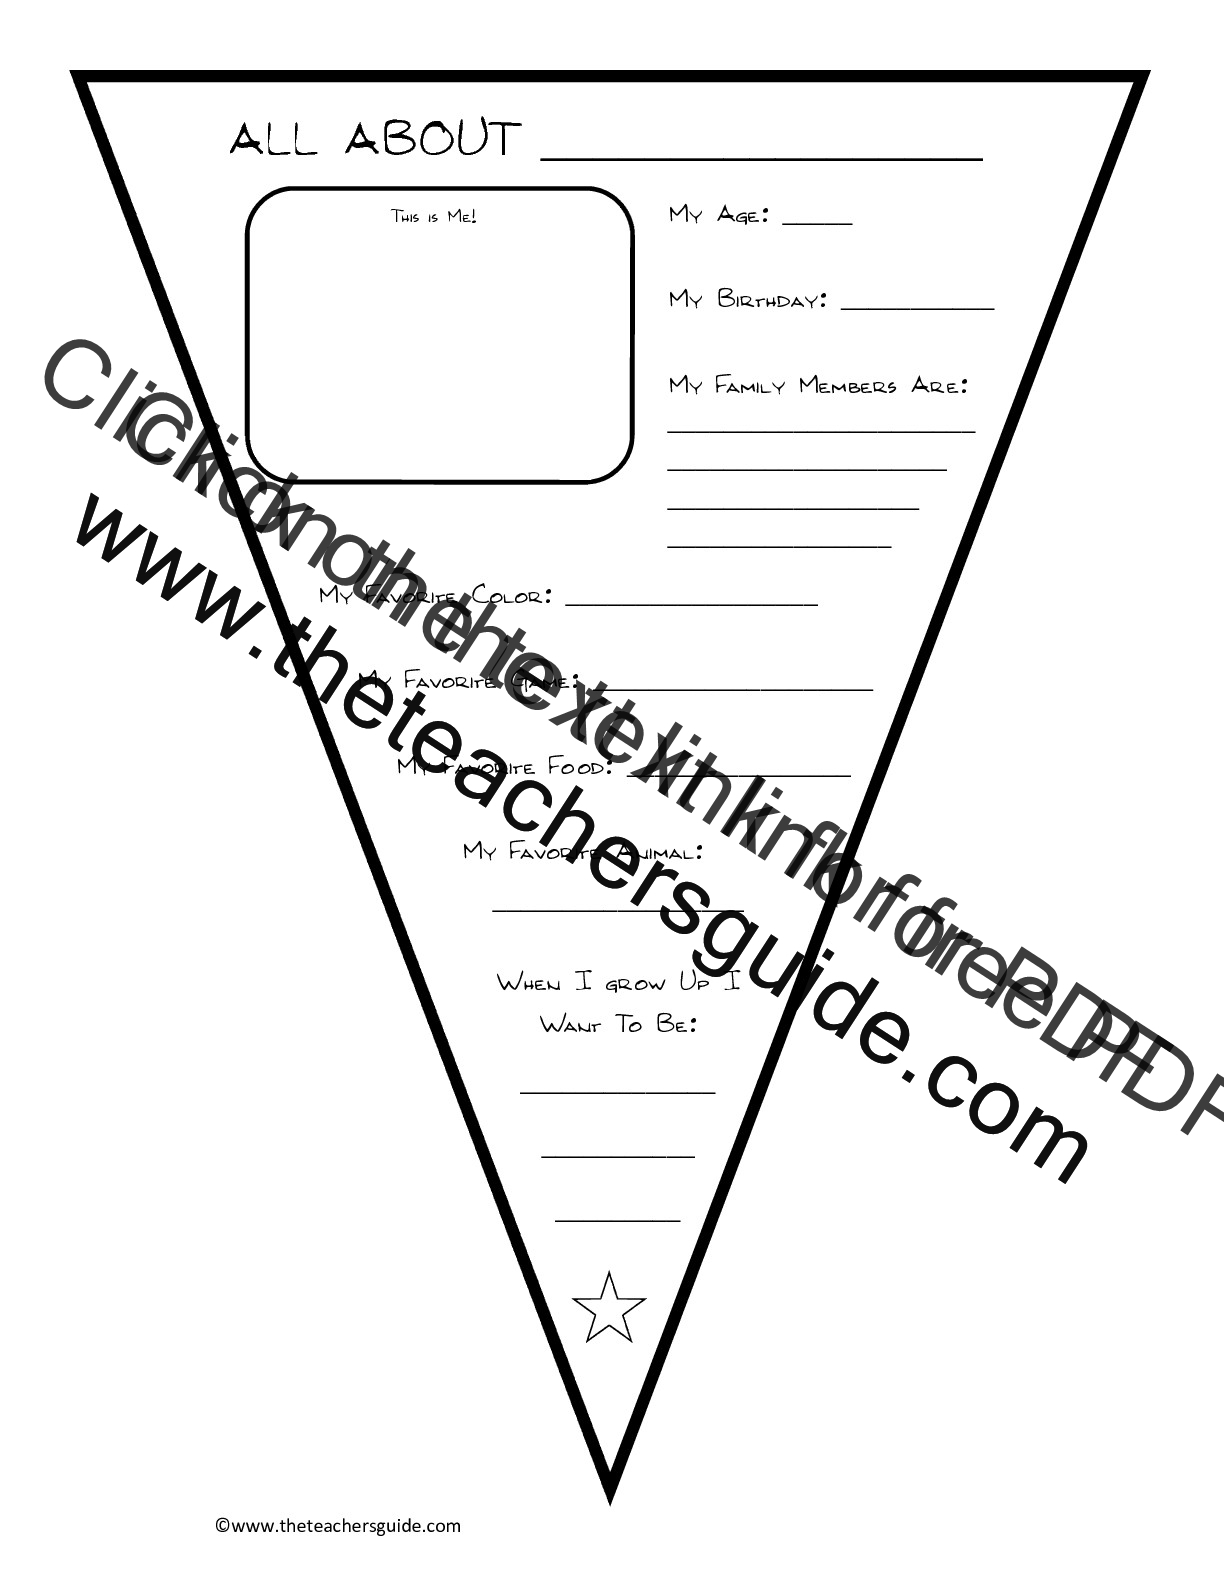 All About Me Template Printable